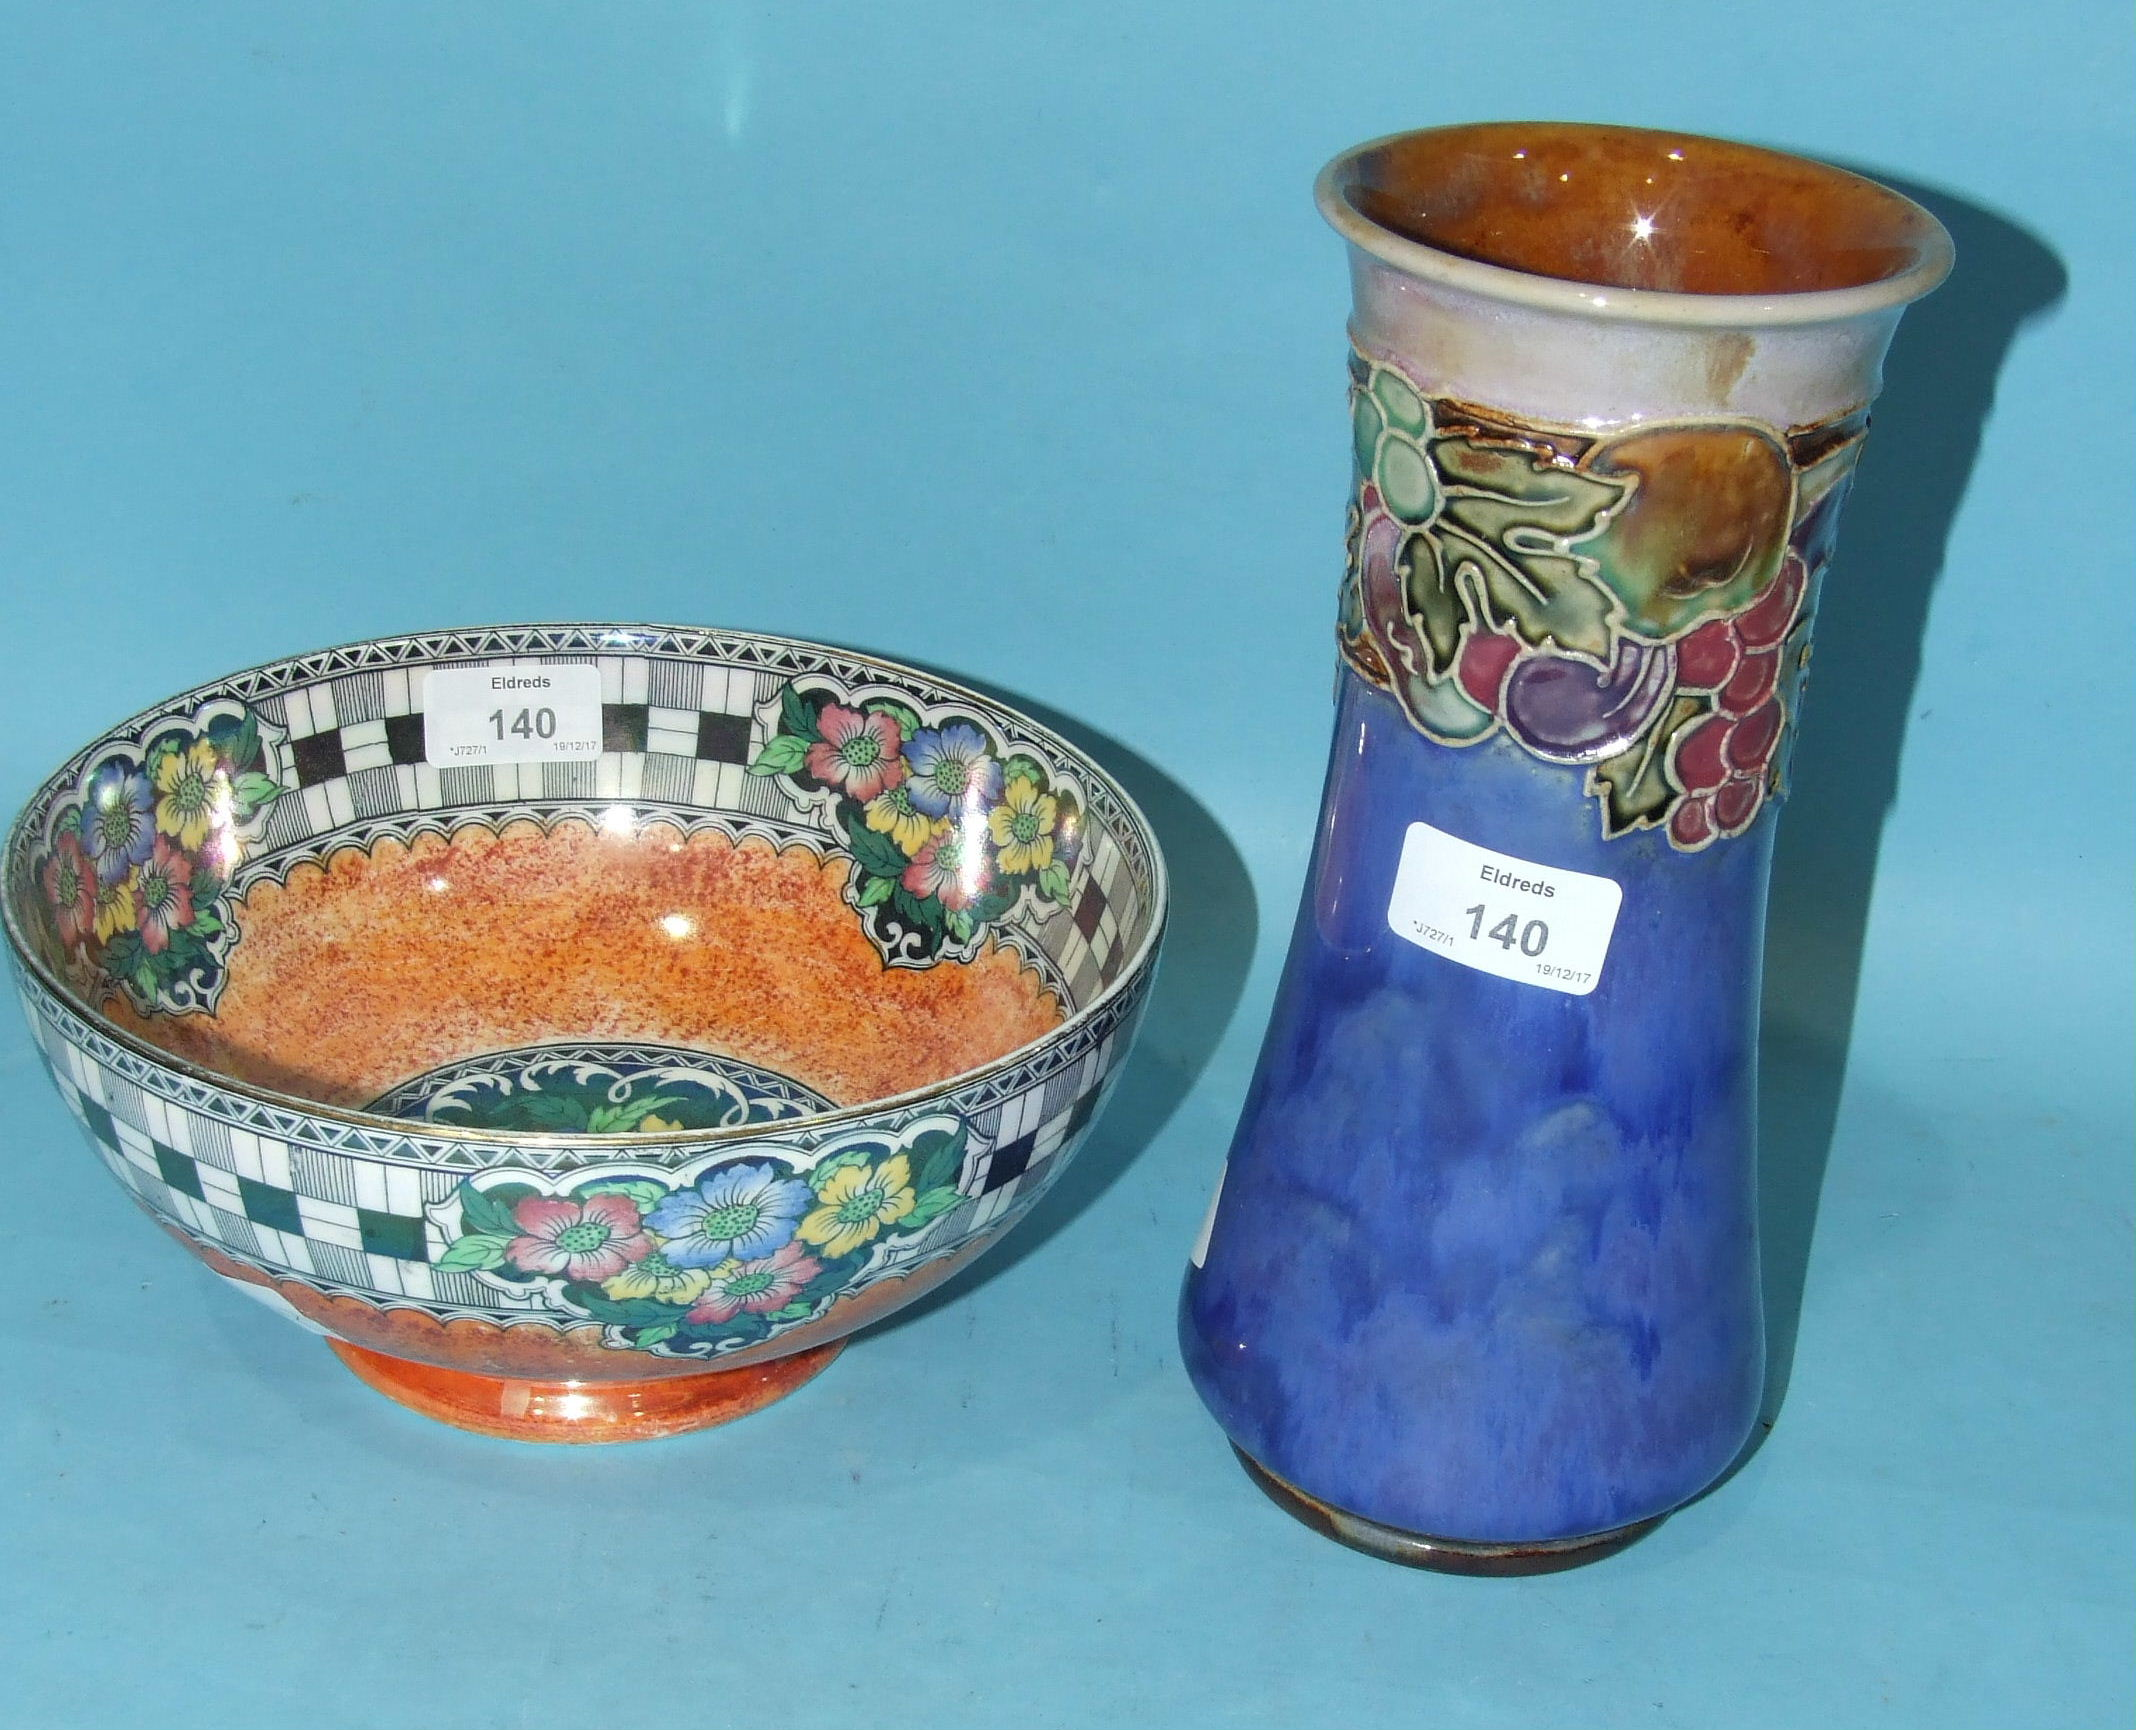 Lot 140 - A Royal Doulton stoneware vase of waisted form with tubeline decoration of fruit on a mottled